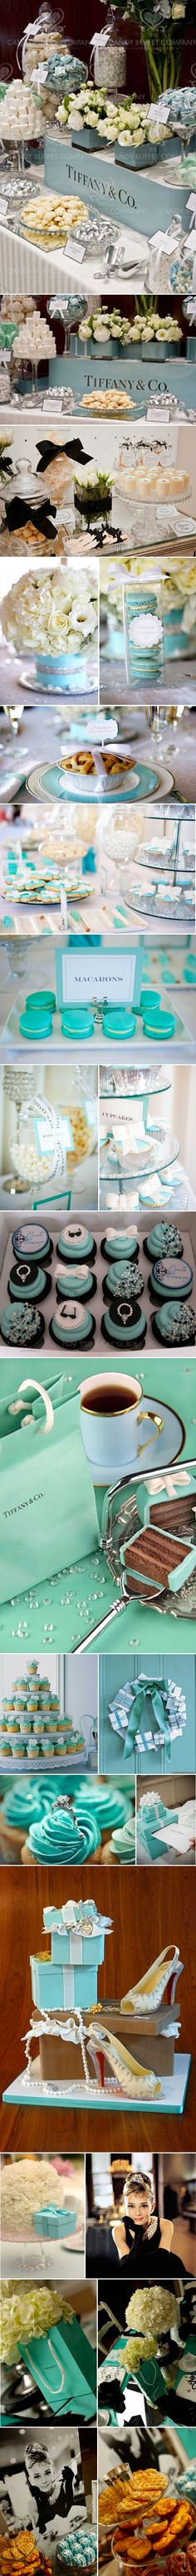 Tiffany & Co bridal shower